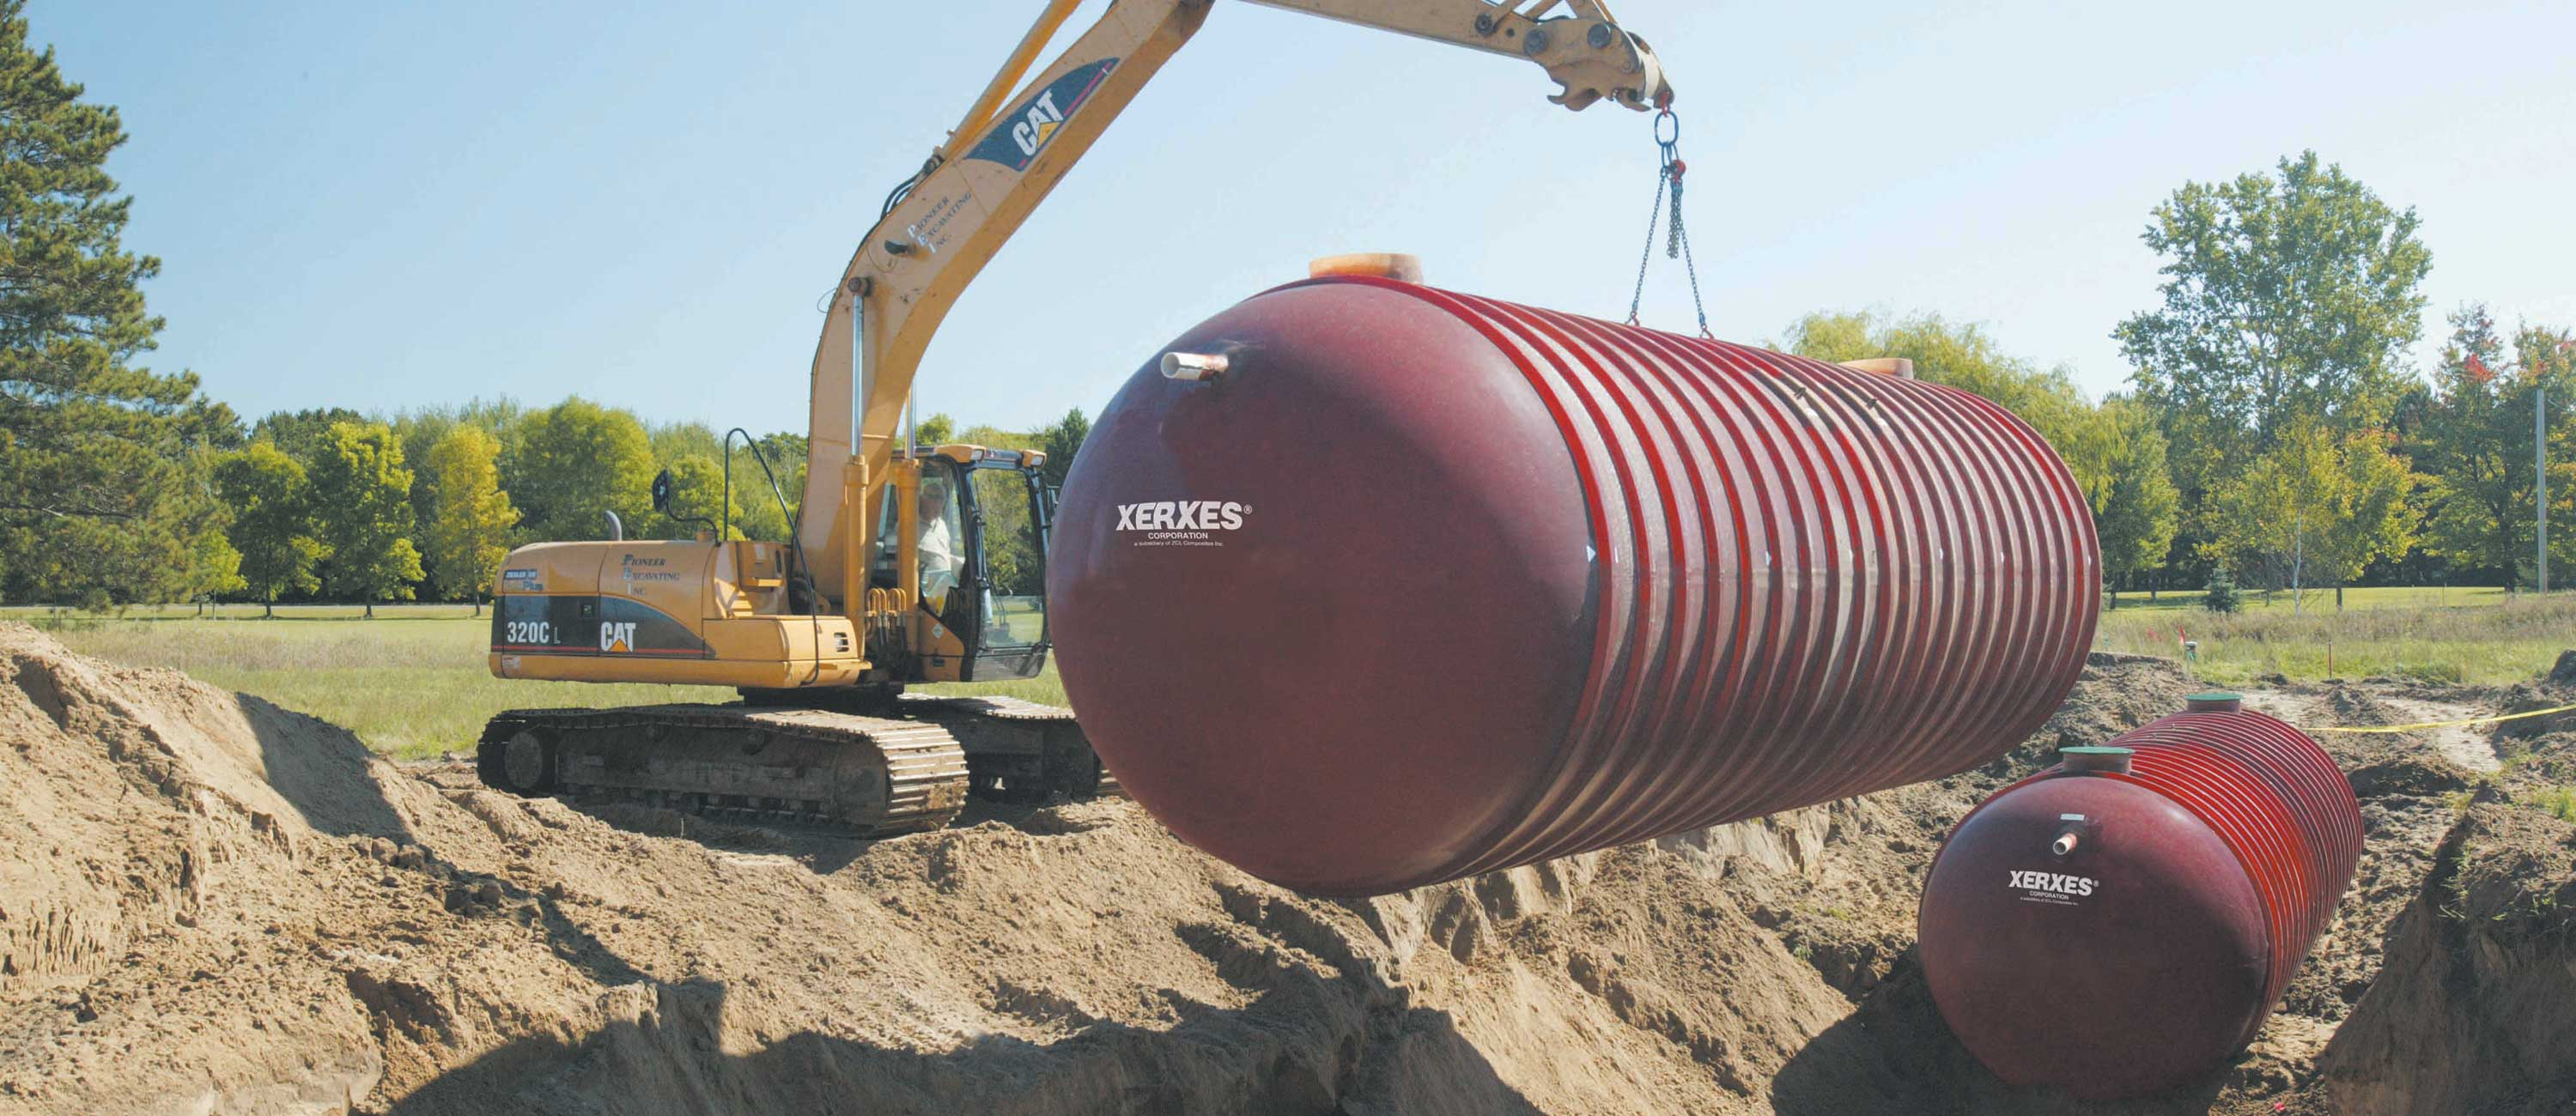 Commercial underground water storage XerXes tanks installations